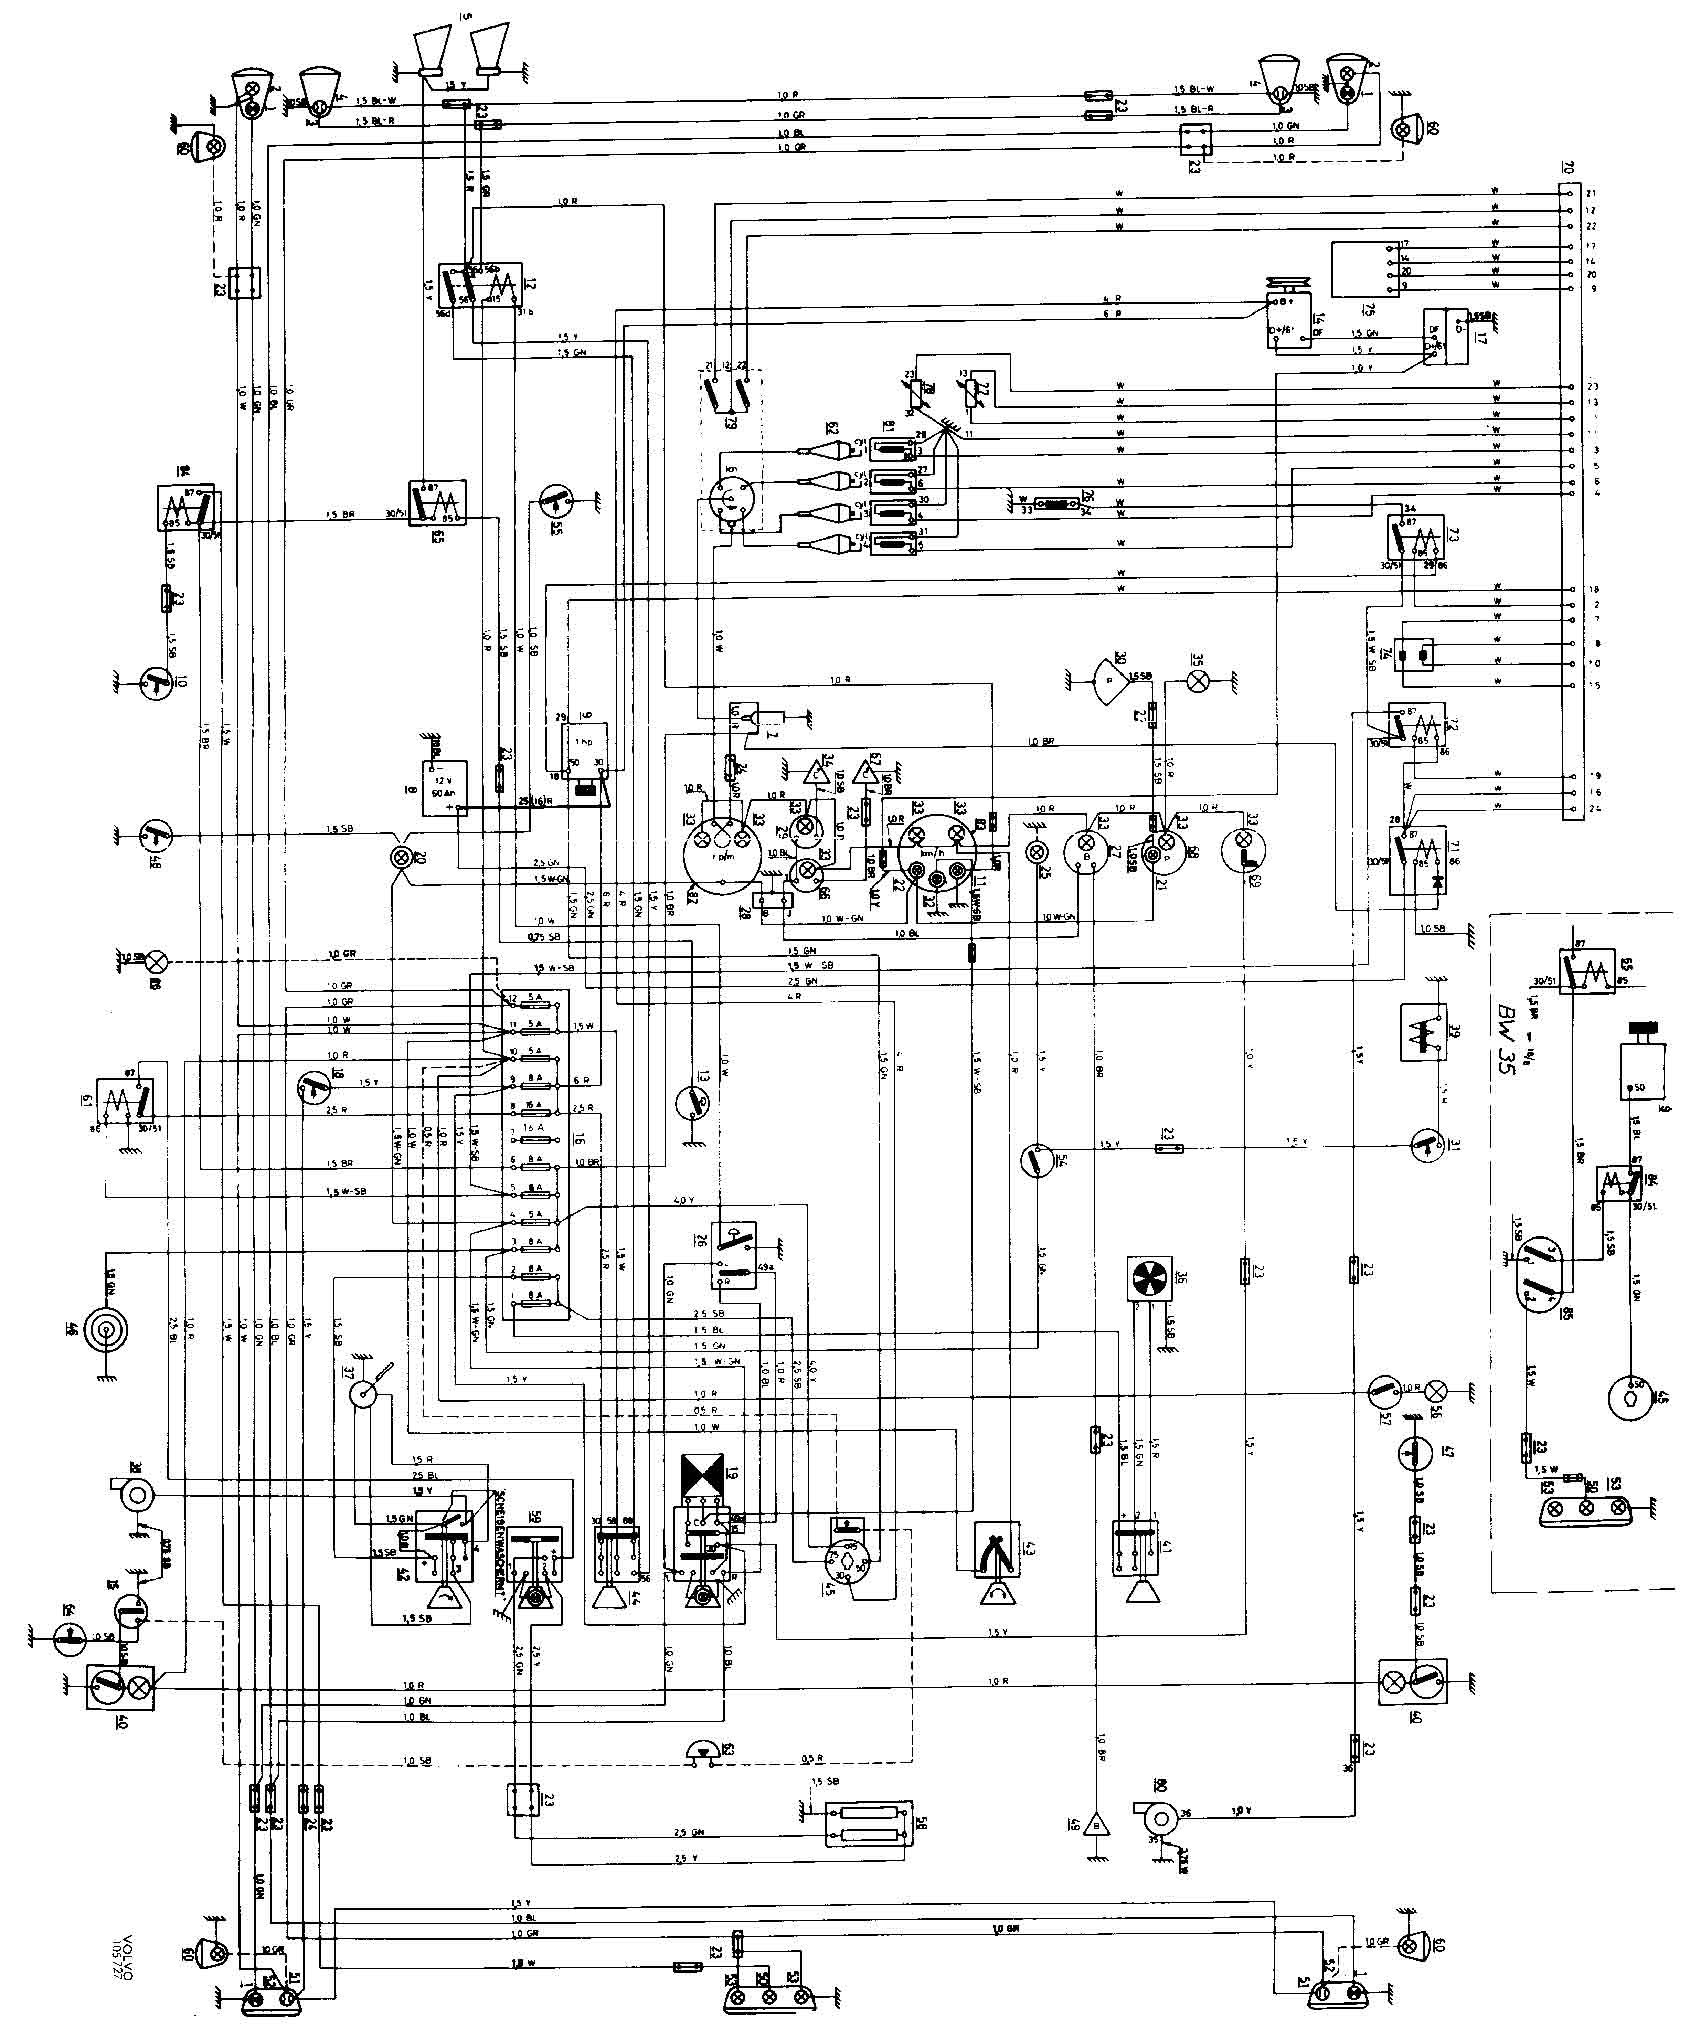 2005 Volvo S40 Engine Diagram Volvo 122 Wiring Diagram Wiring Diagram Of 2005 Volvo S40 Engine Diagram